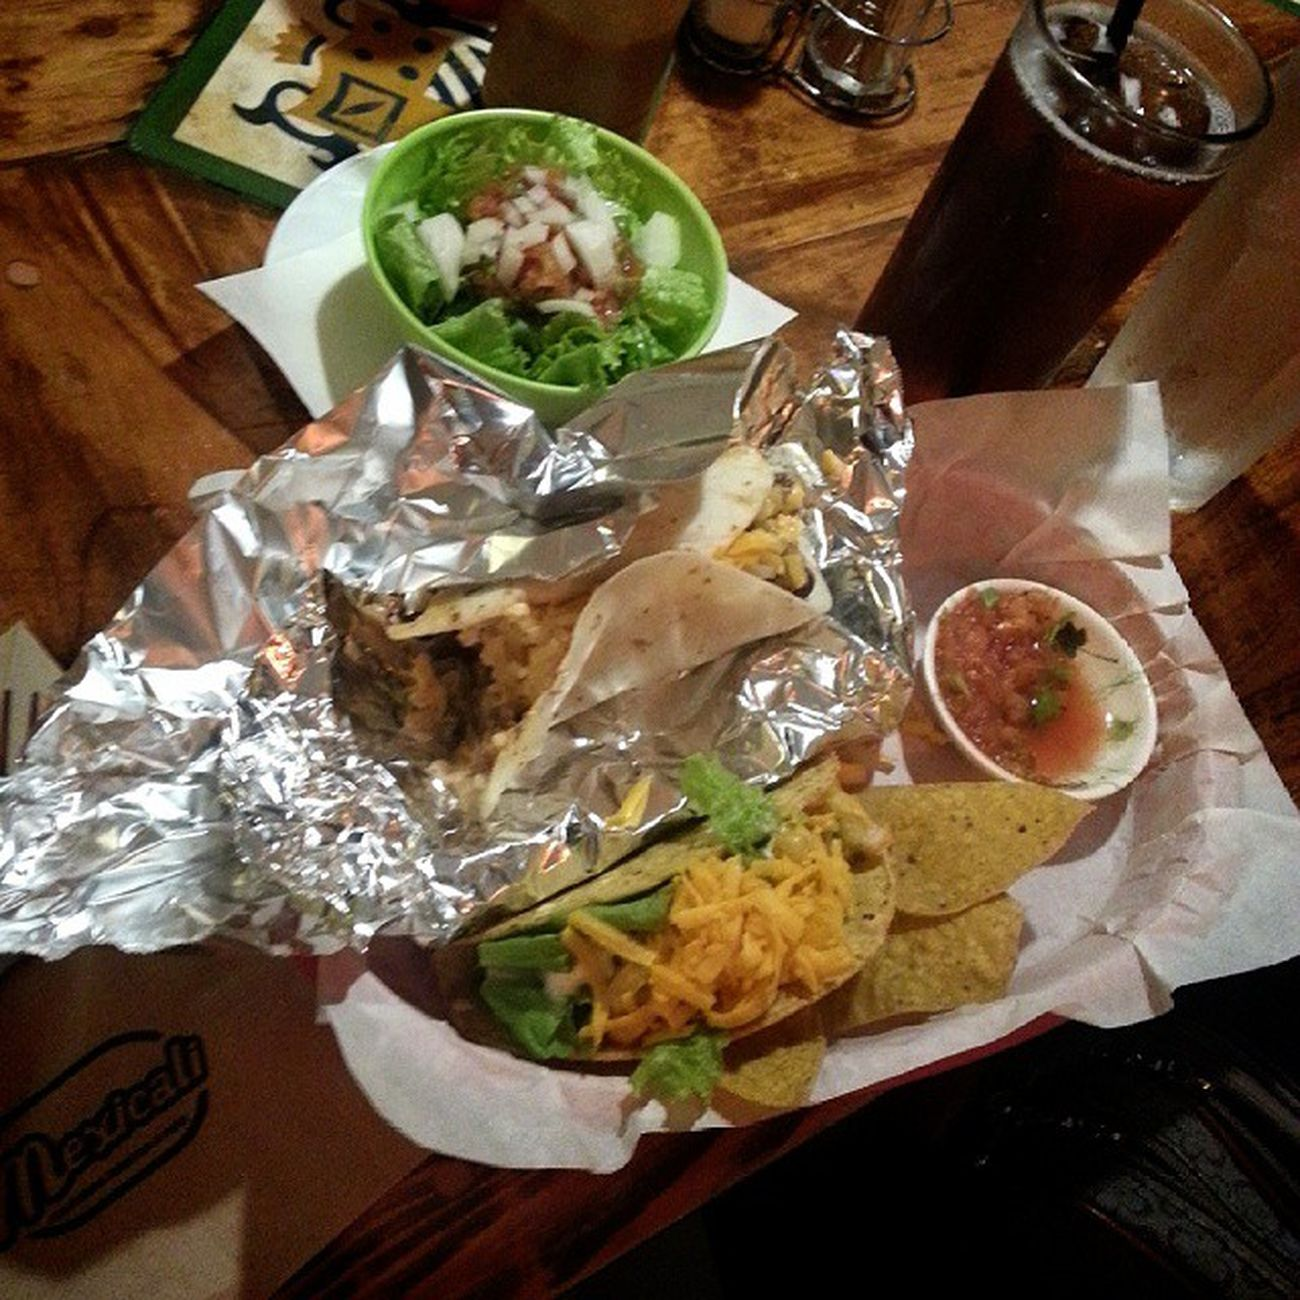 buritos, tacos & salad ? Craving